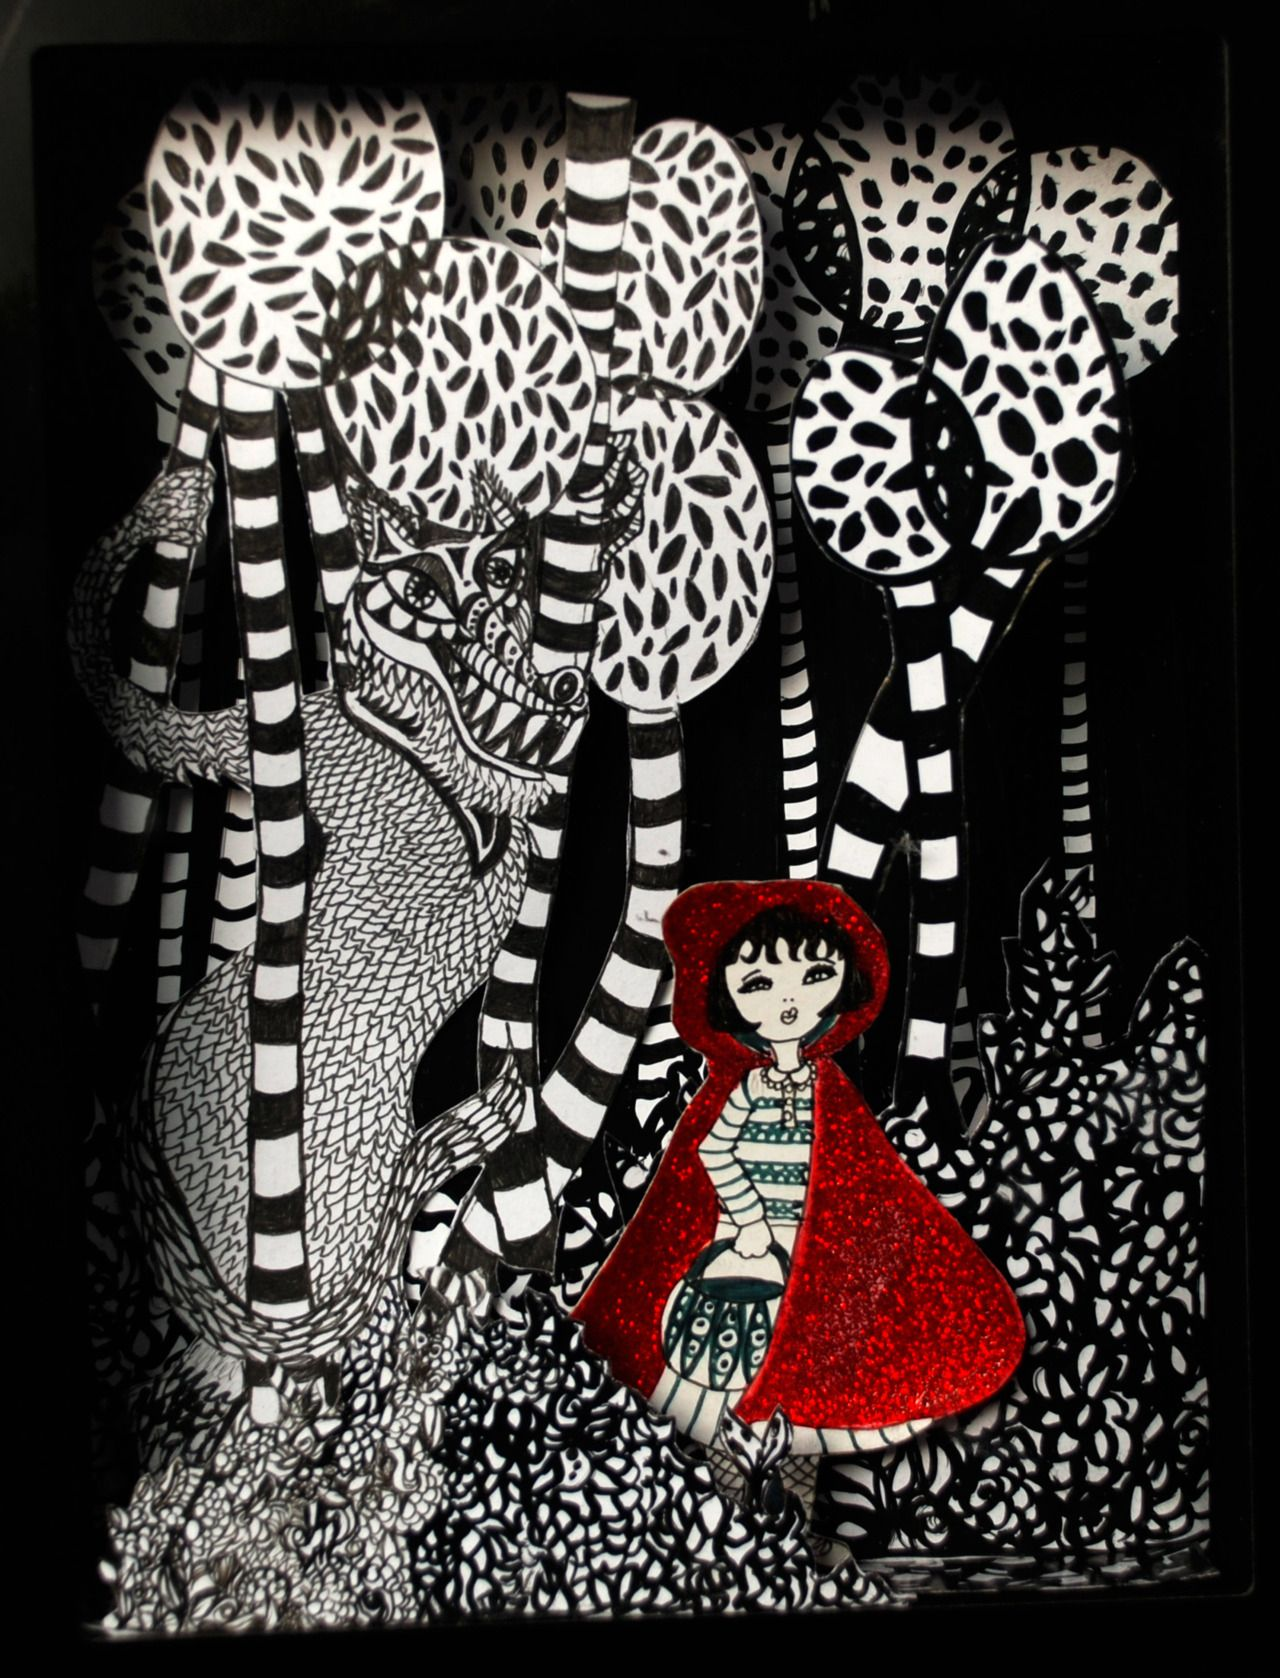 Little red riding hood and the big bad wolf love this for little red riding hood and the big bad wolf love this for fractured fairy tales buycottarizona